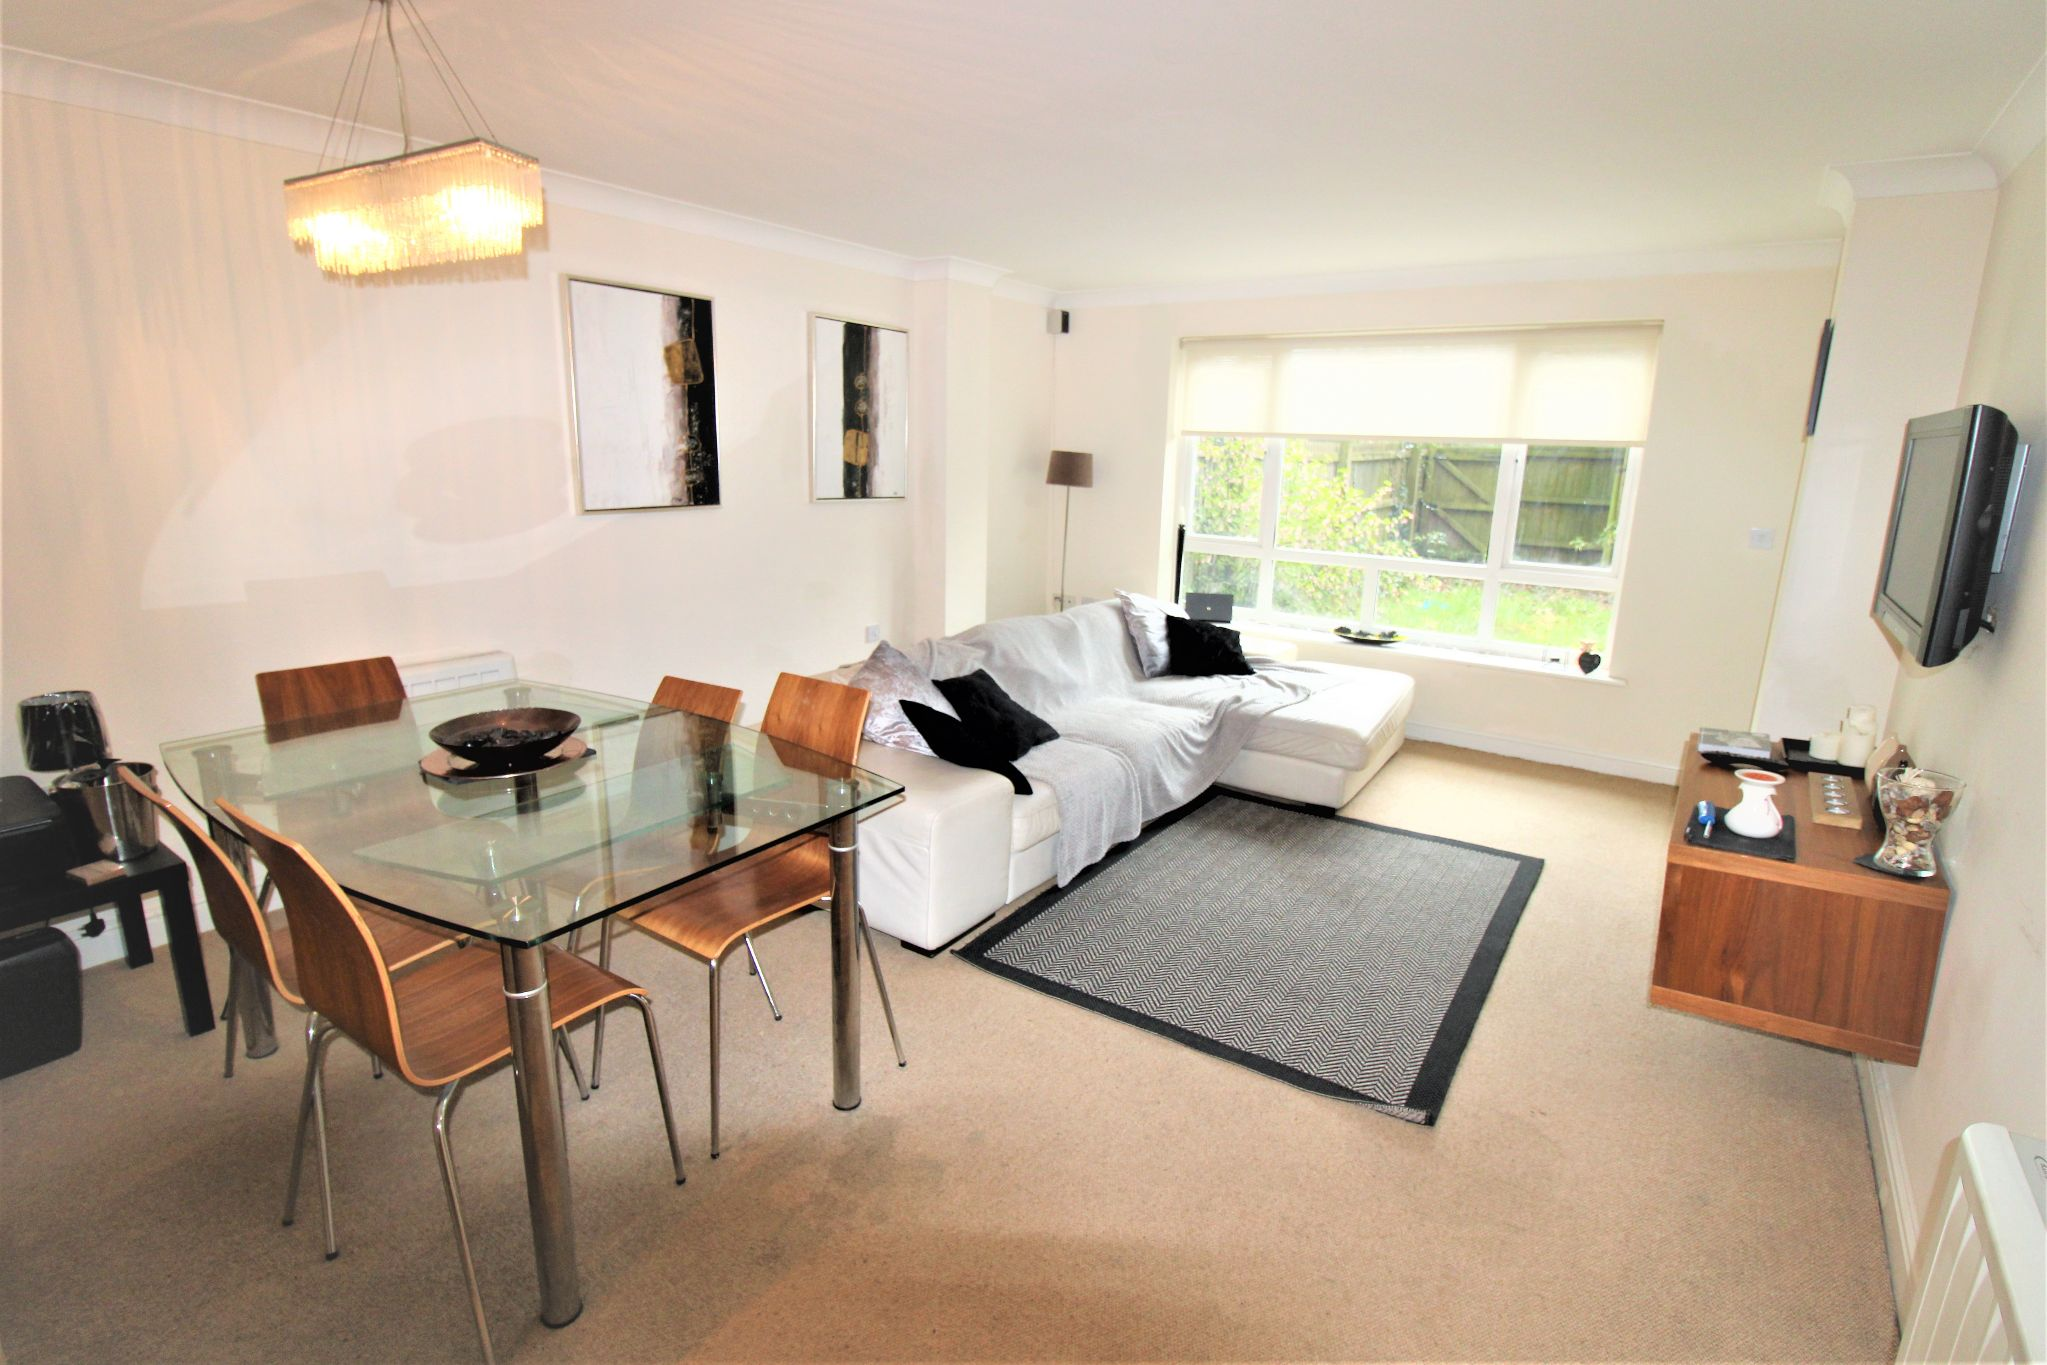 2 Bedroom Apartment Flat/apartment For Sale - Living room /dining area